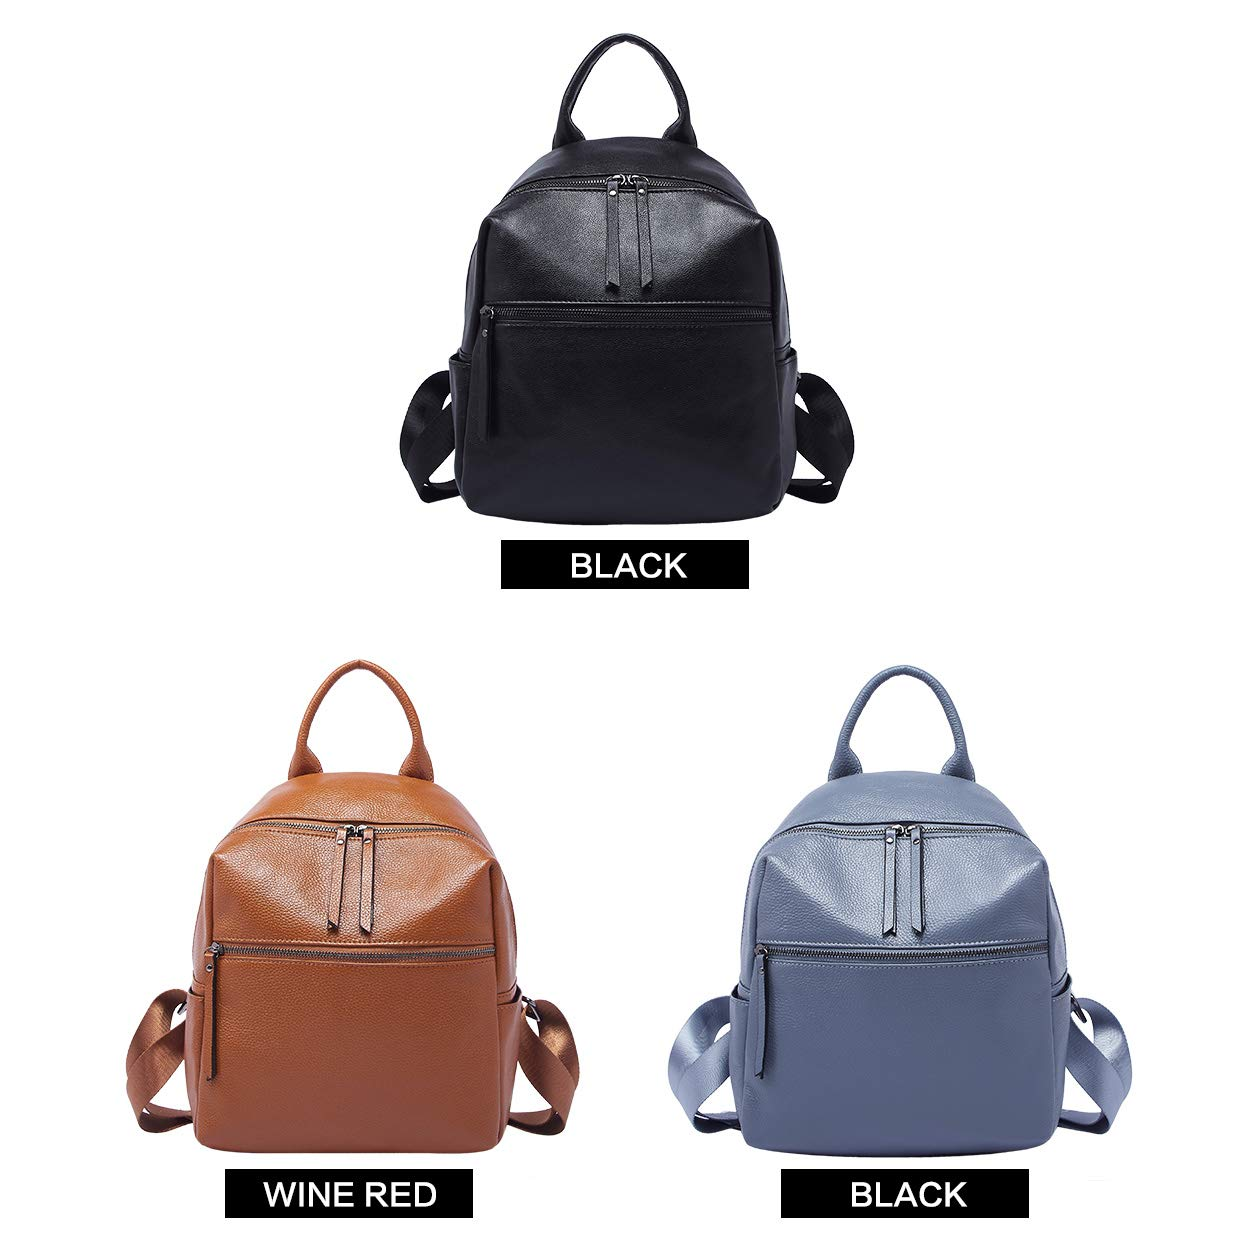 BOYATU Genuine Leather Backpack Purse for Women Anti-theft Small Shoulder Bags by BOYATU (Image #6)